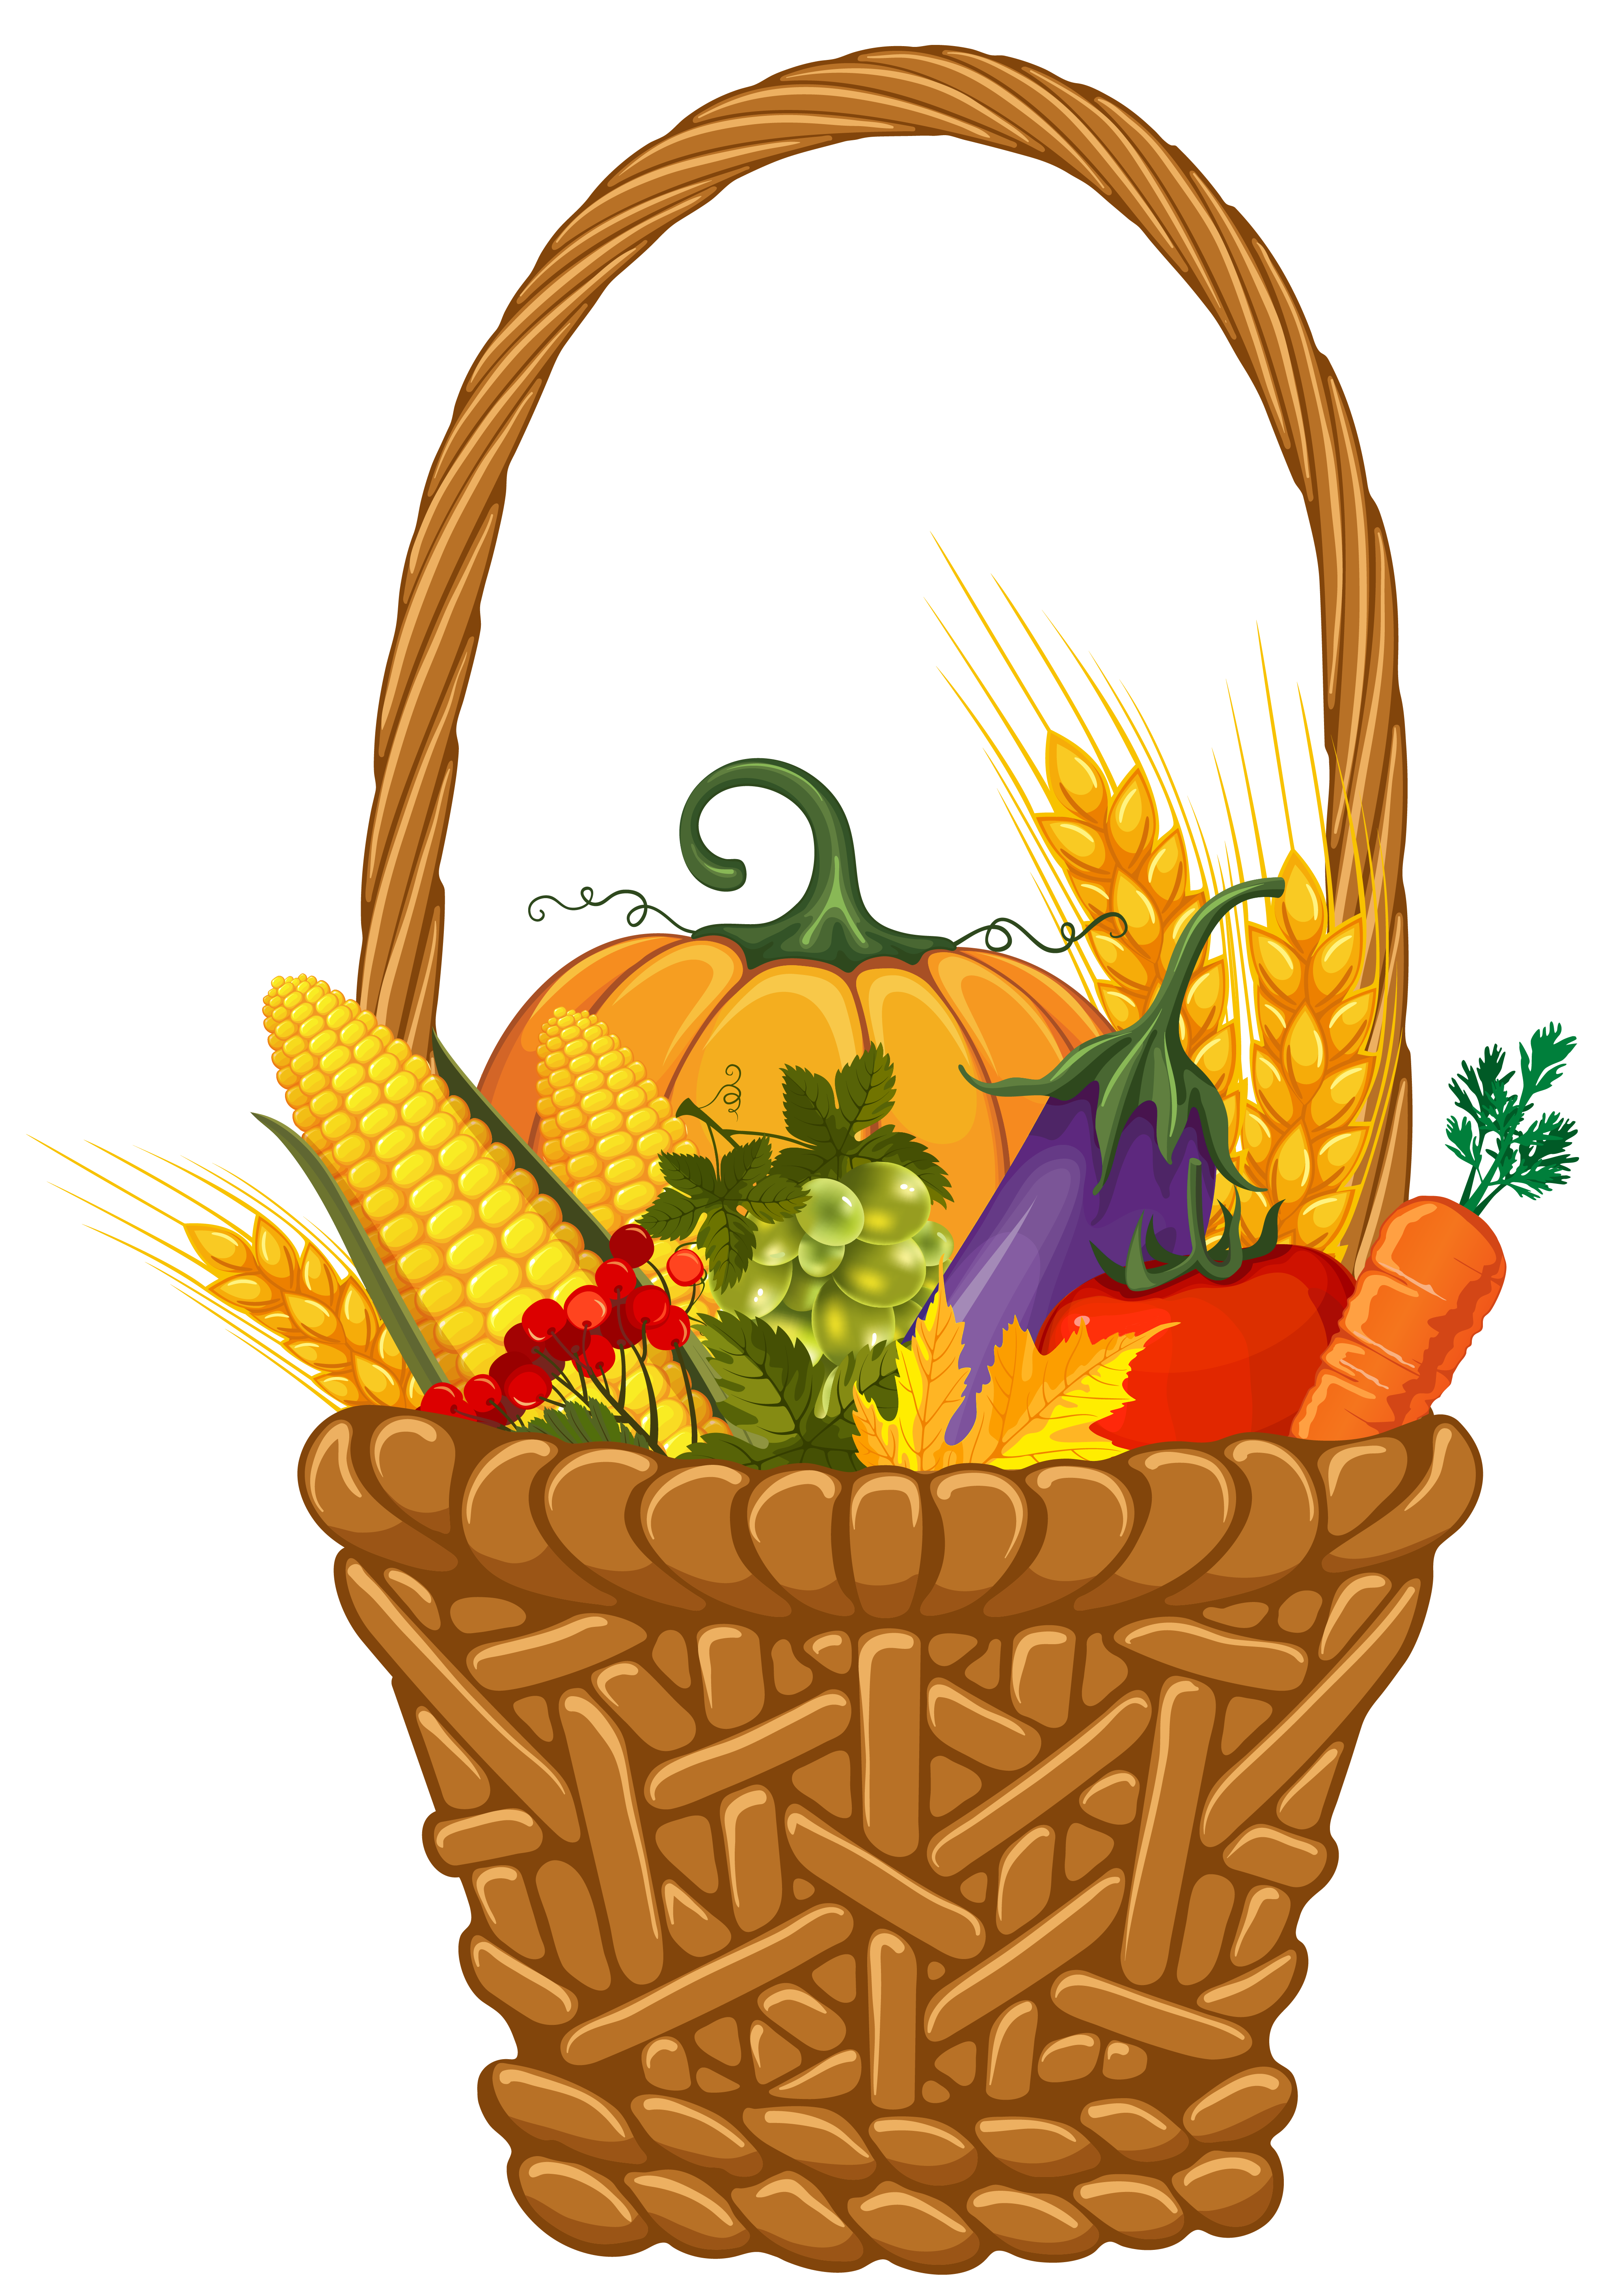 Water clipart basket. Fall harvest png image